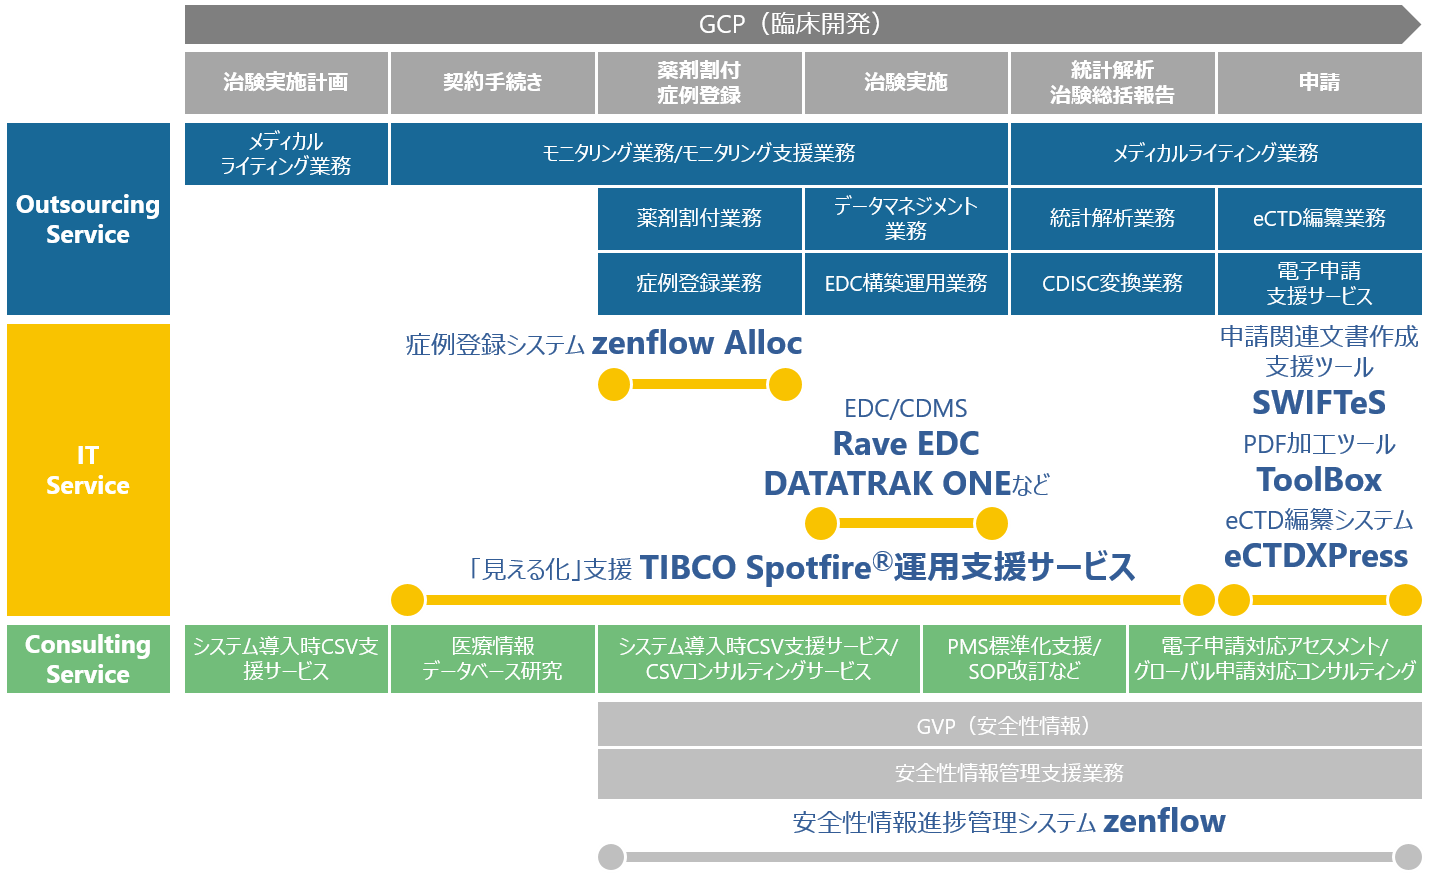 GCP Solution Map